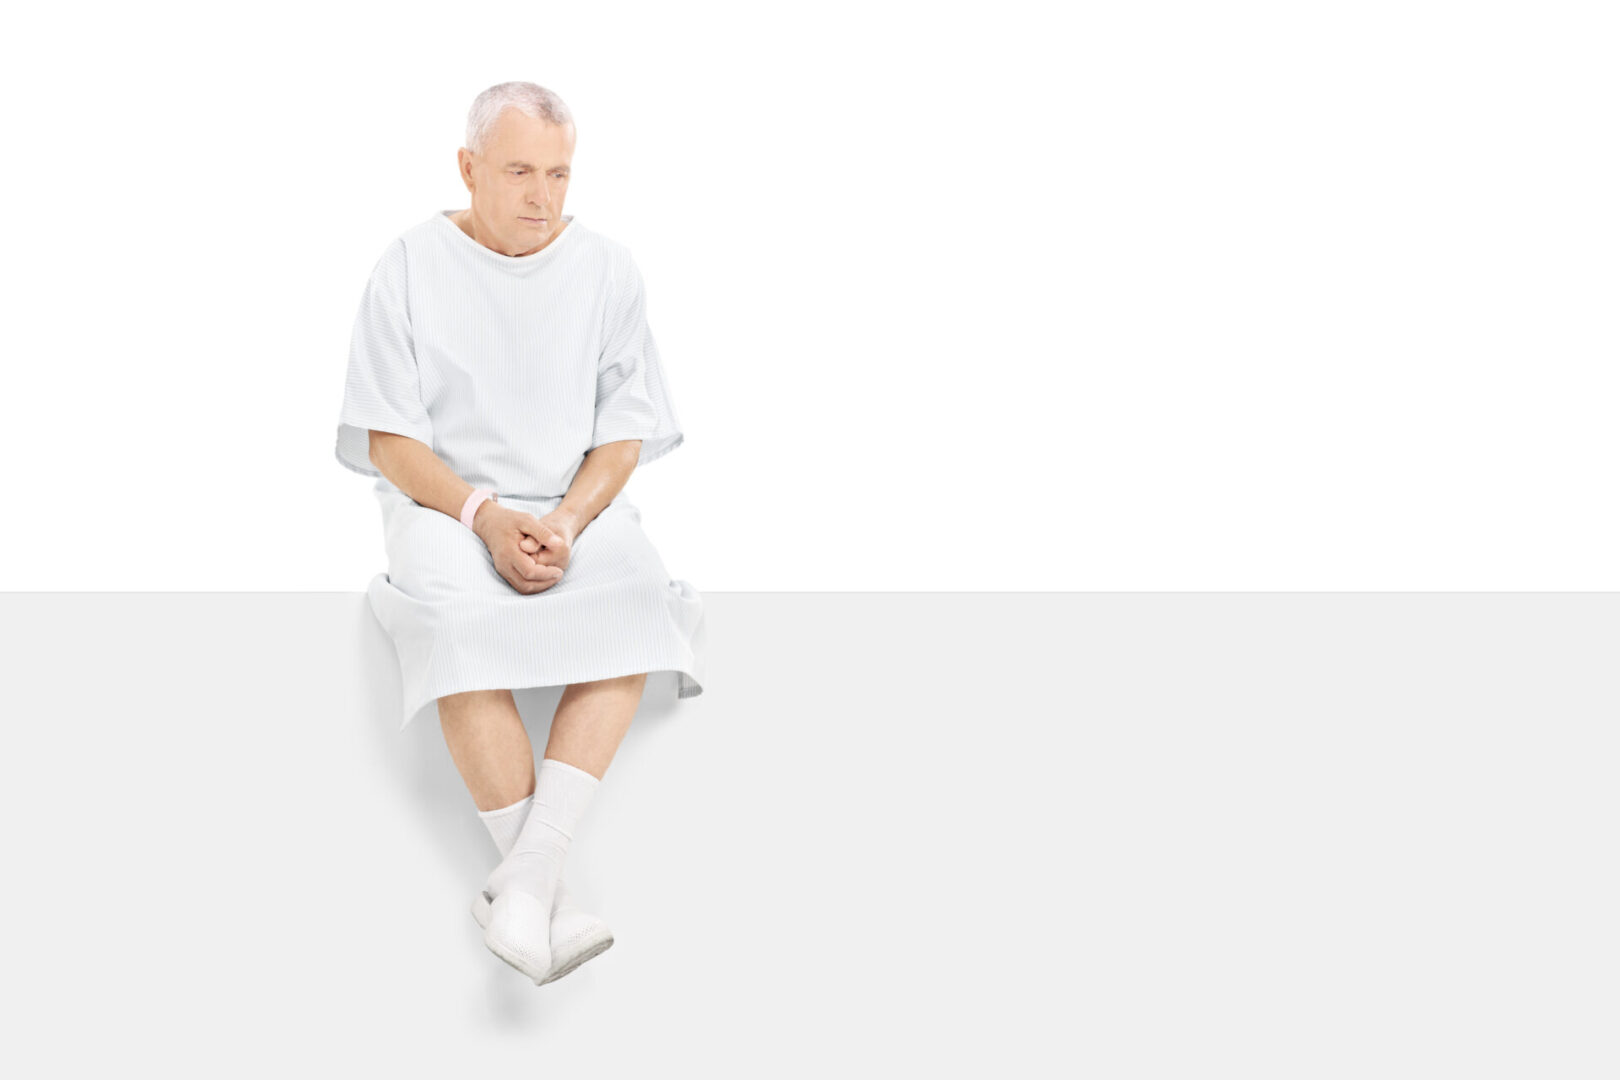 Man sitting in patient gown